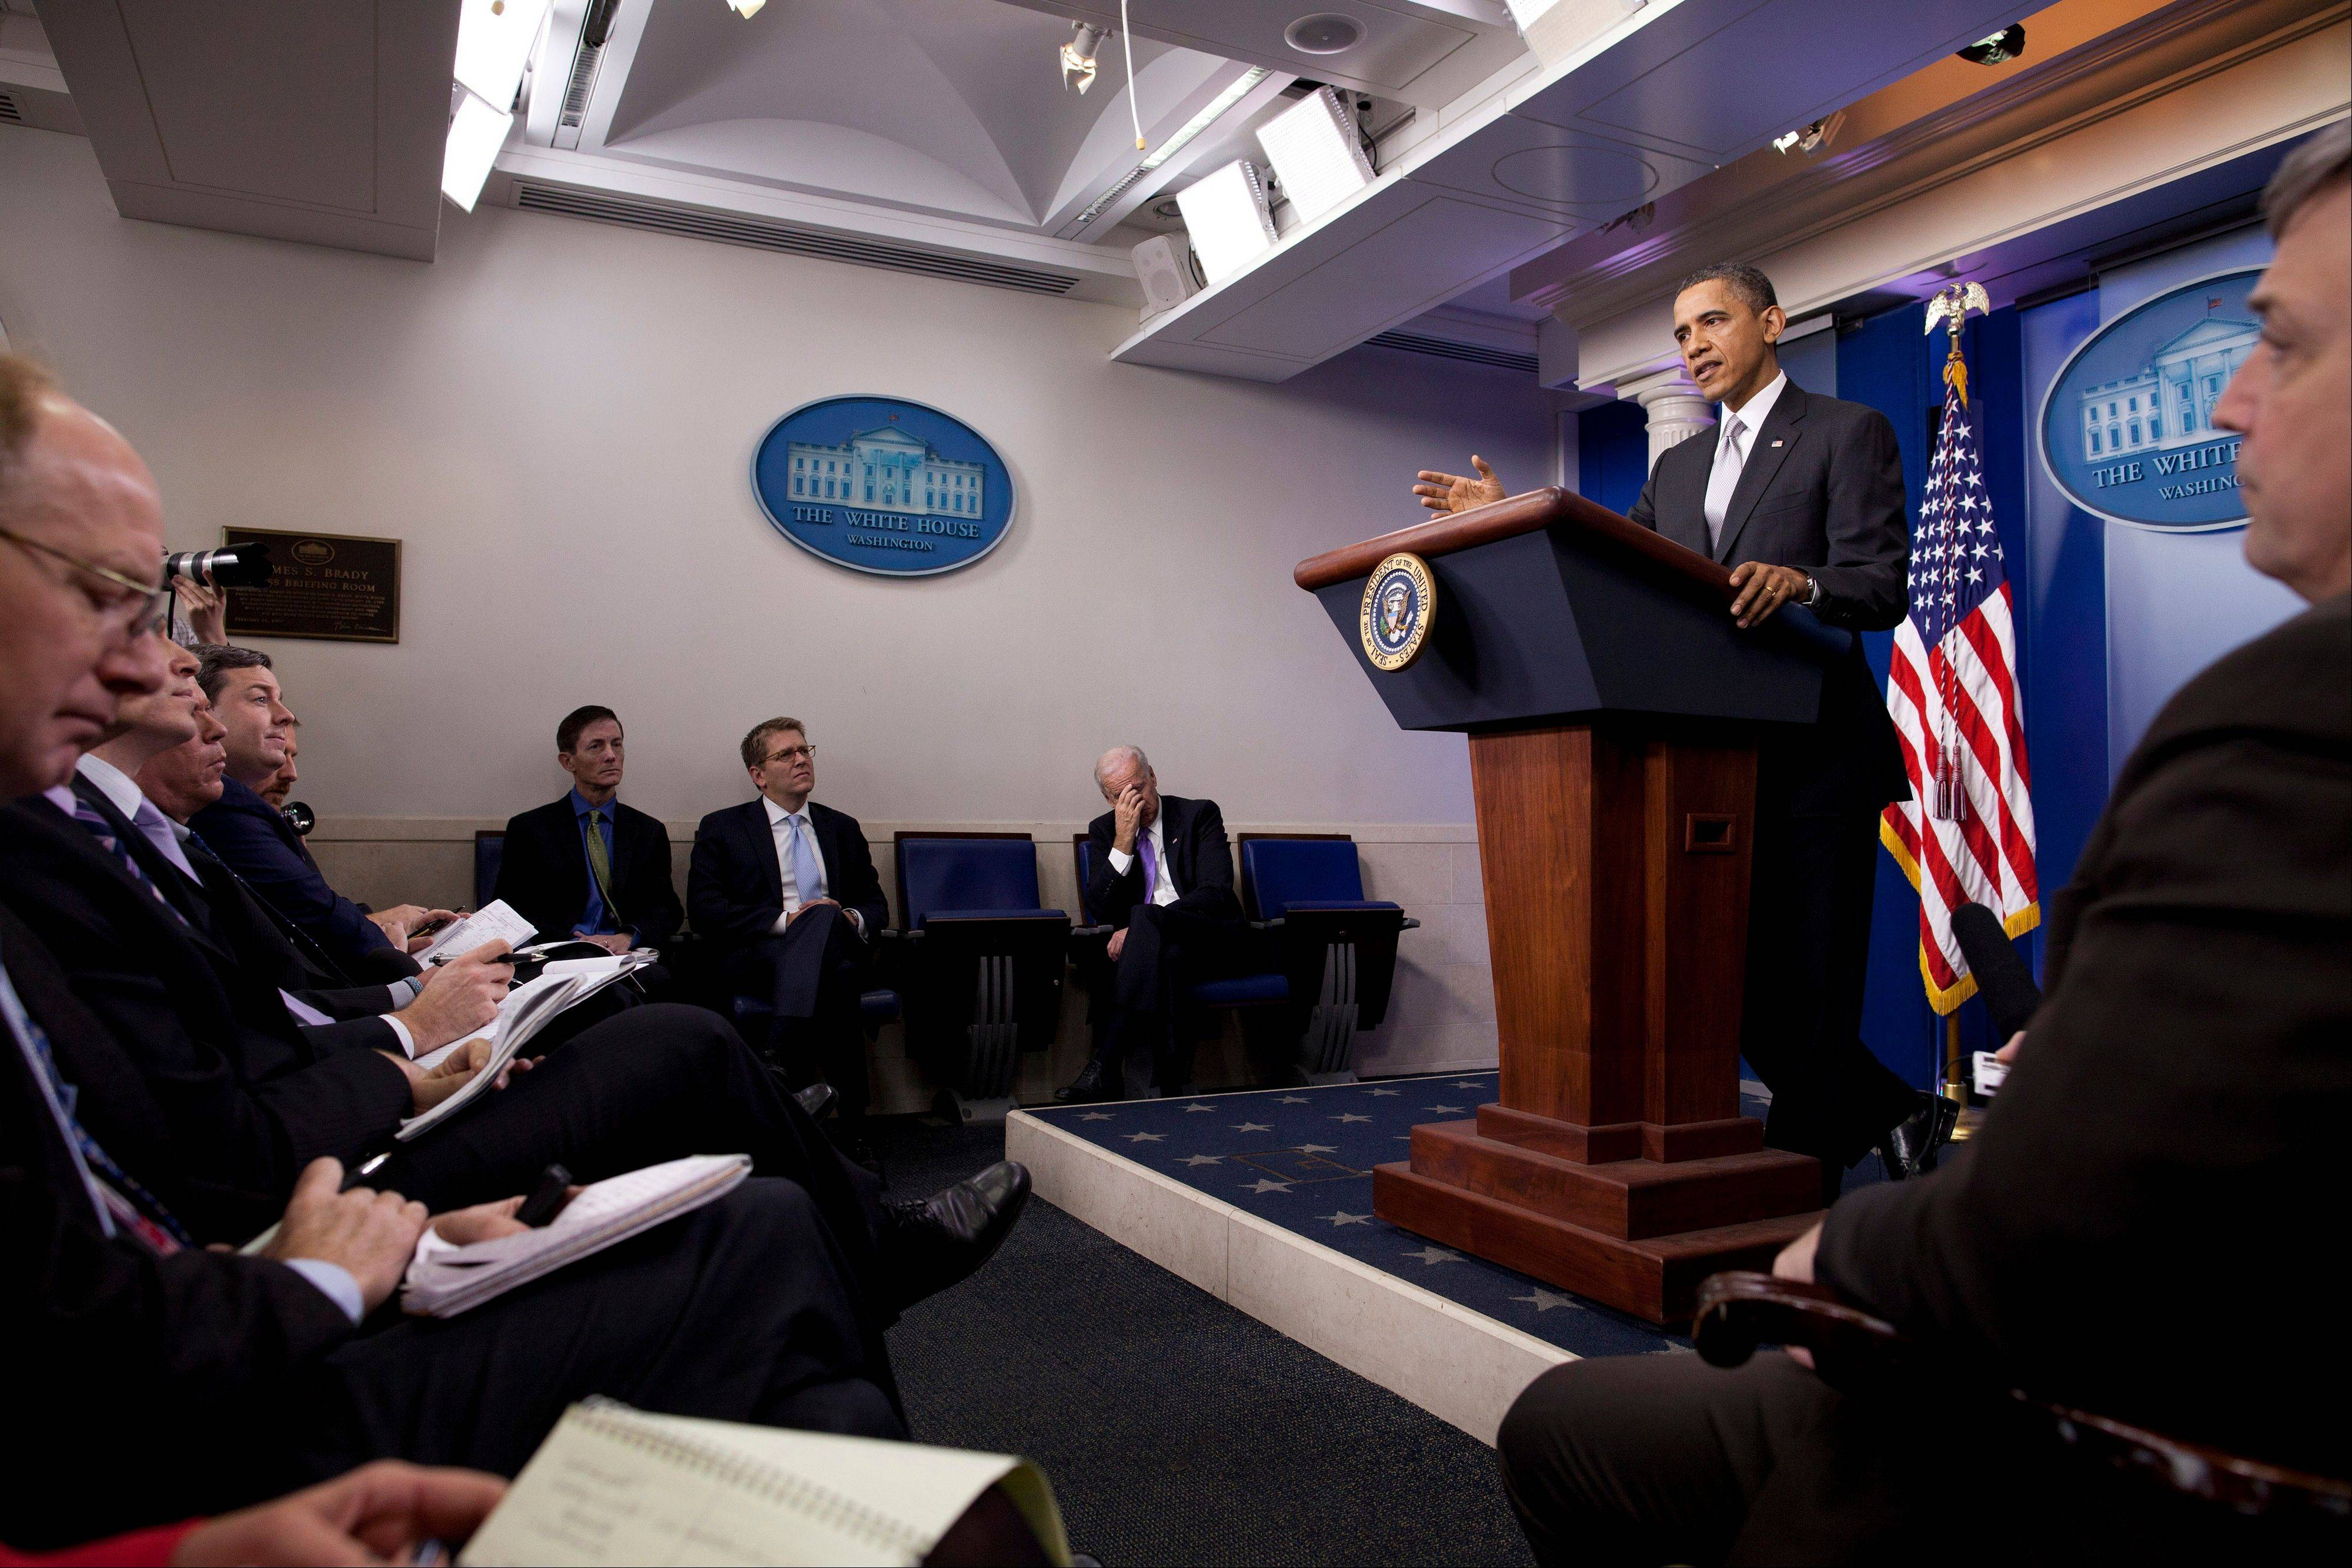 Vice President Joe Biden, third from right, looks down as President Barack Obama gestures as he talks about the fiscal cliff negotiations during a news conference in the briefing room of the White House on Wednesday